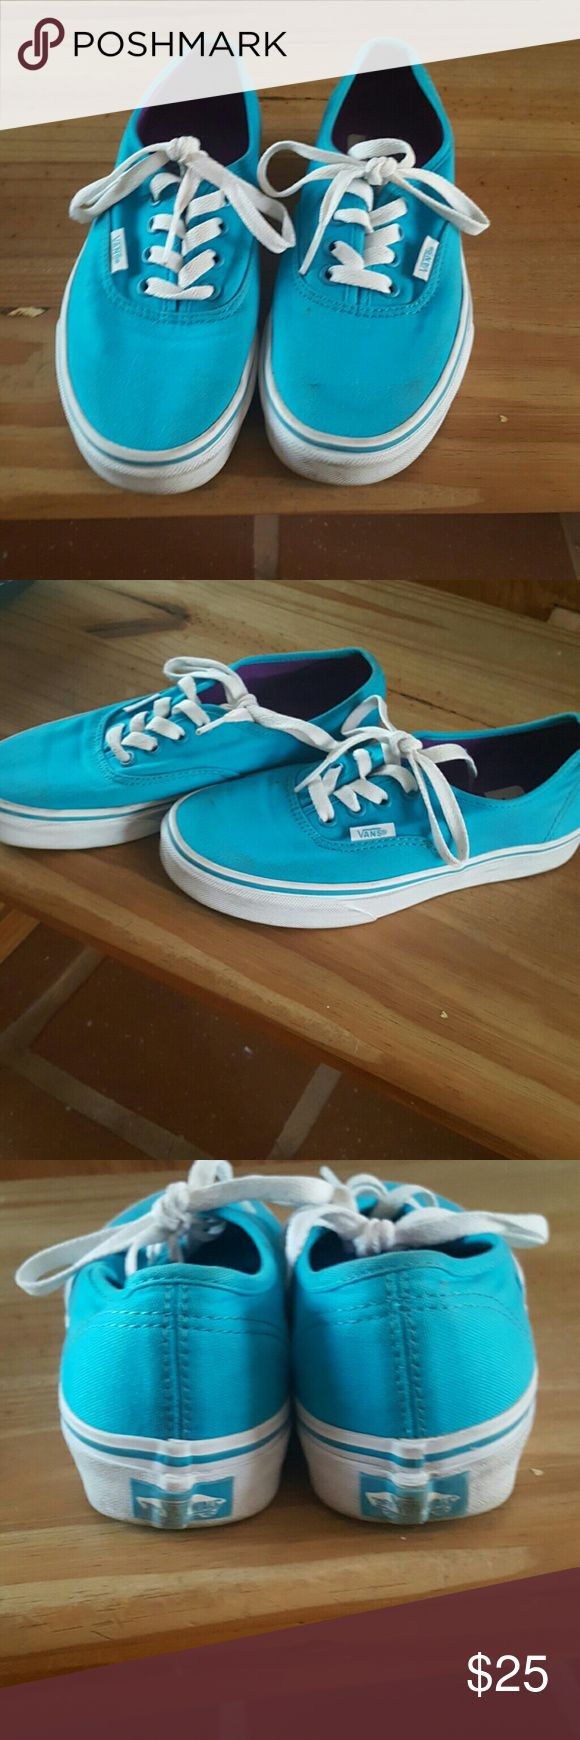 Baby blue vans Used twice, new condition  WOMEN'S 5.5, mens 4 Vans Shoes